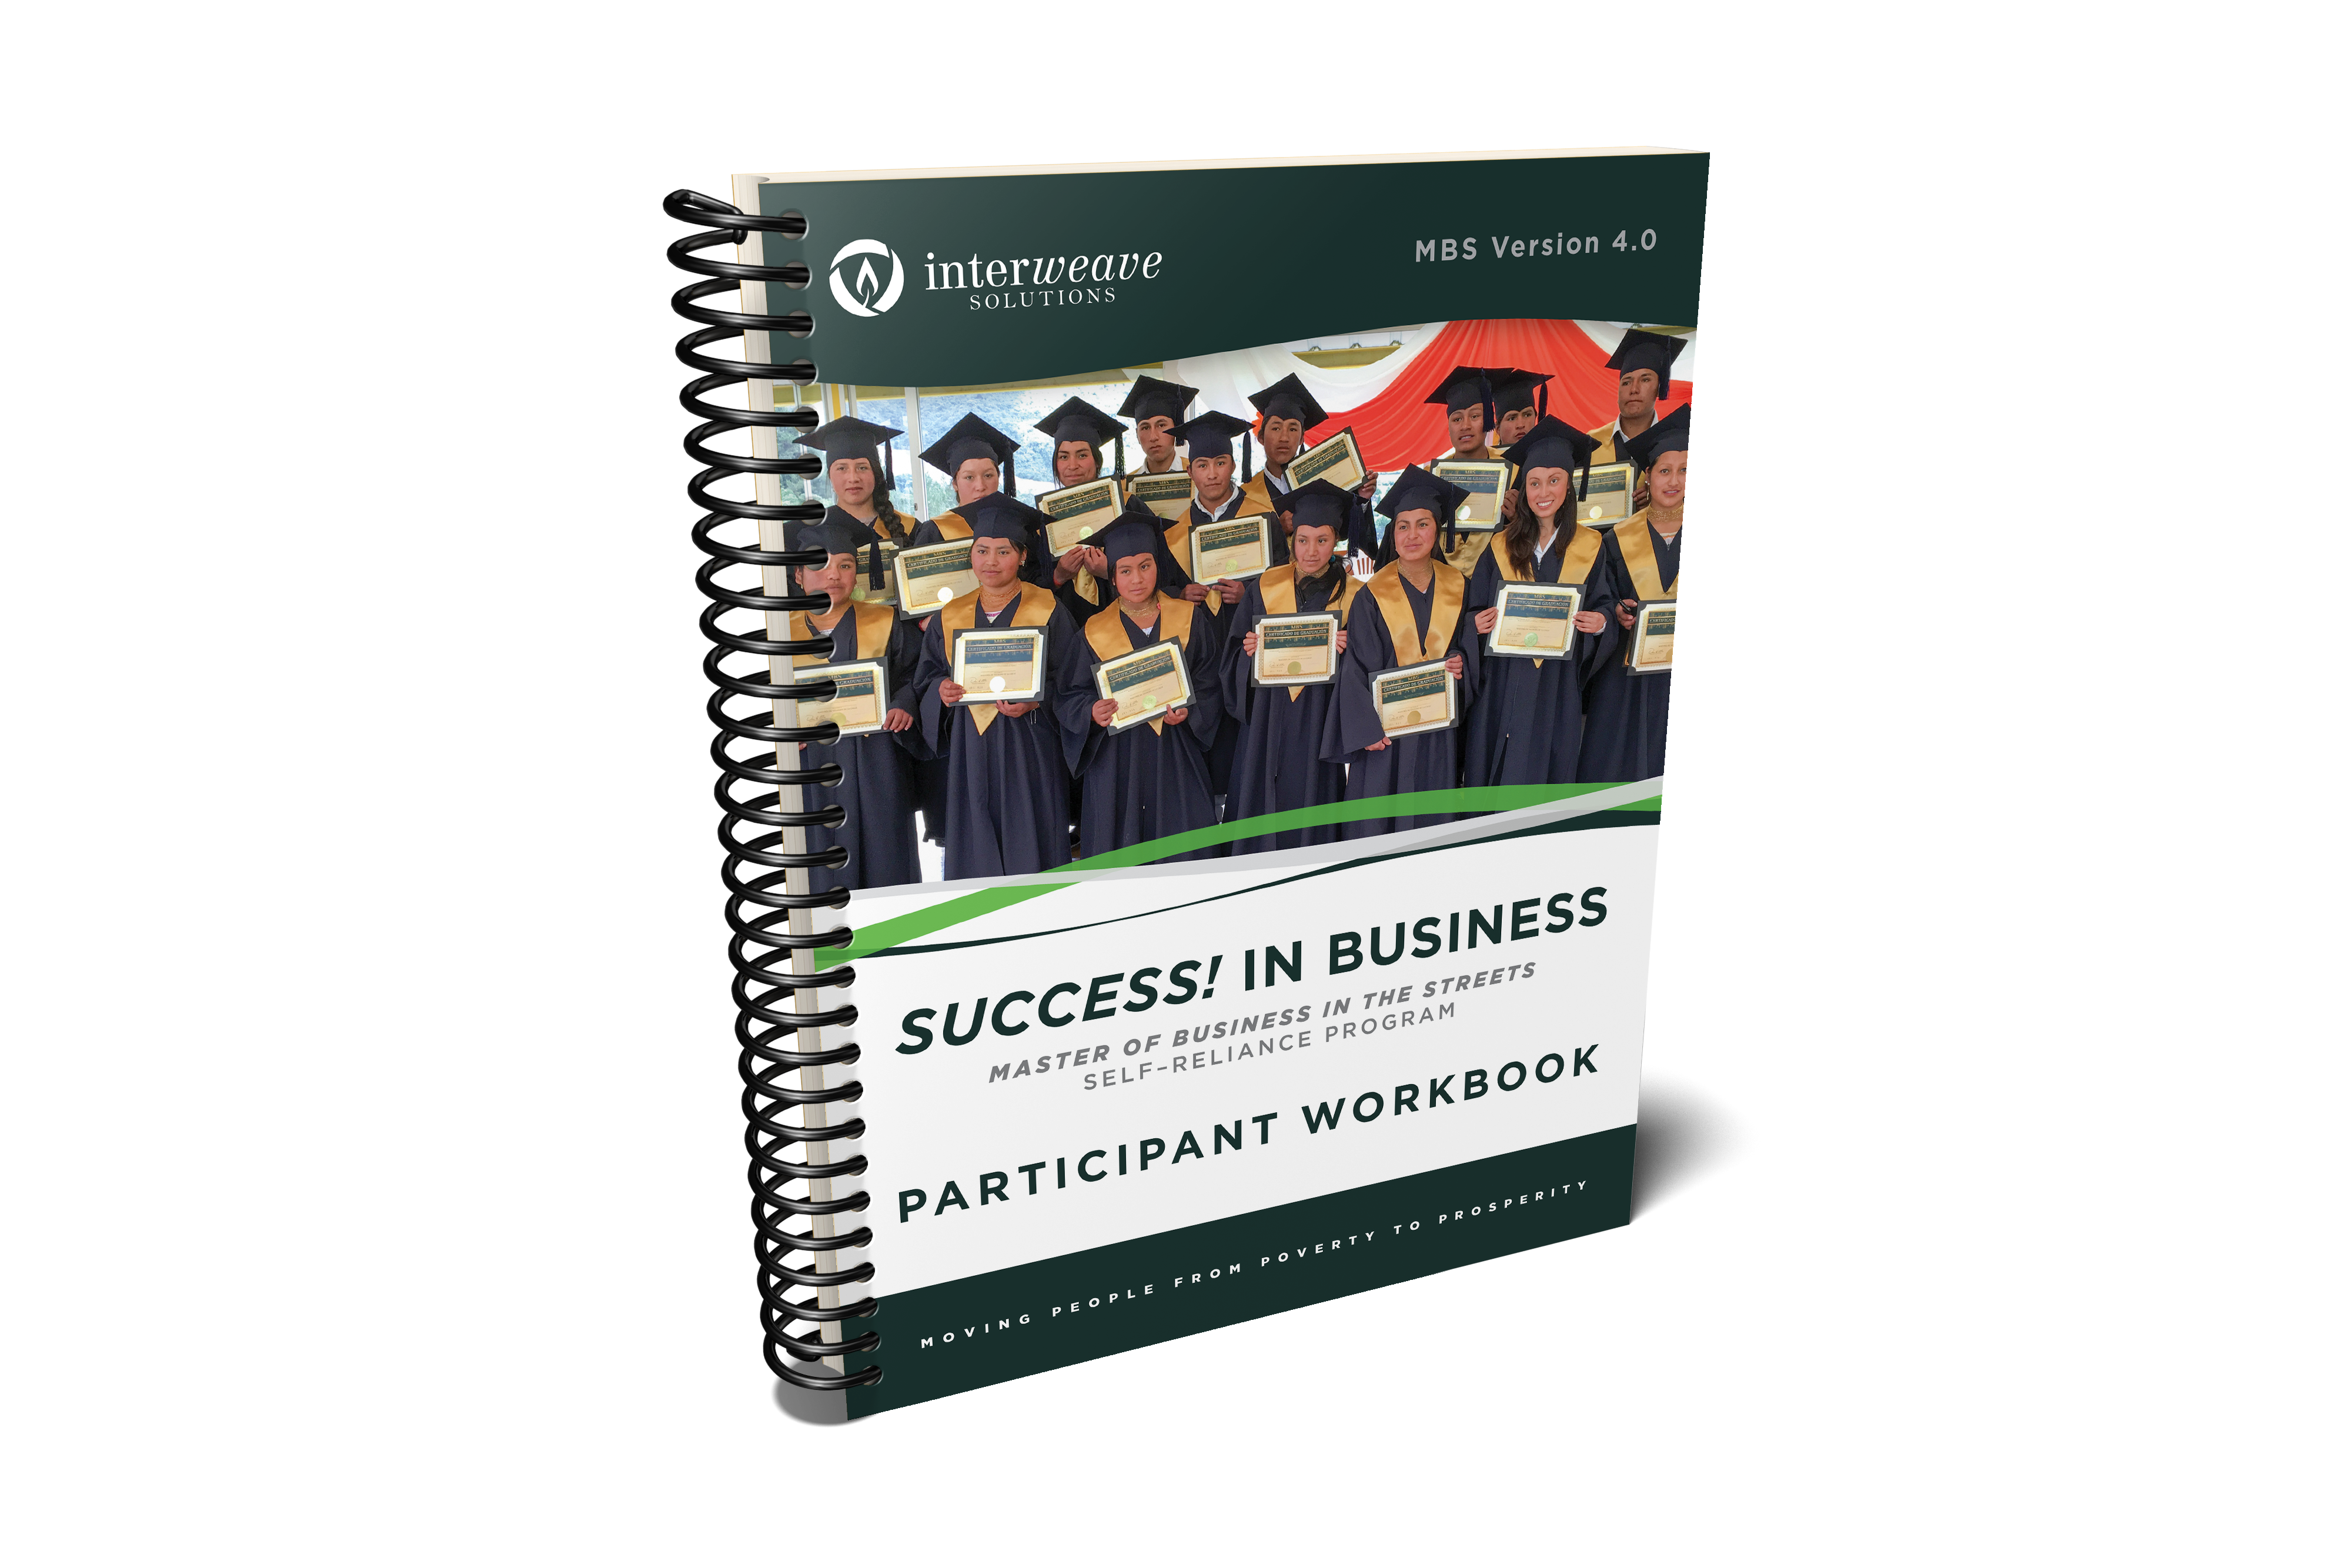 To download the Participant Workbook, please click here:Participant Workbook